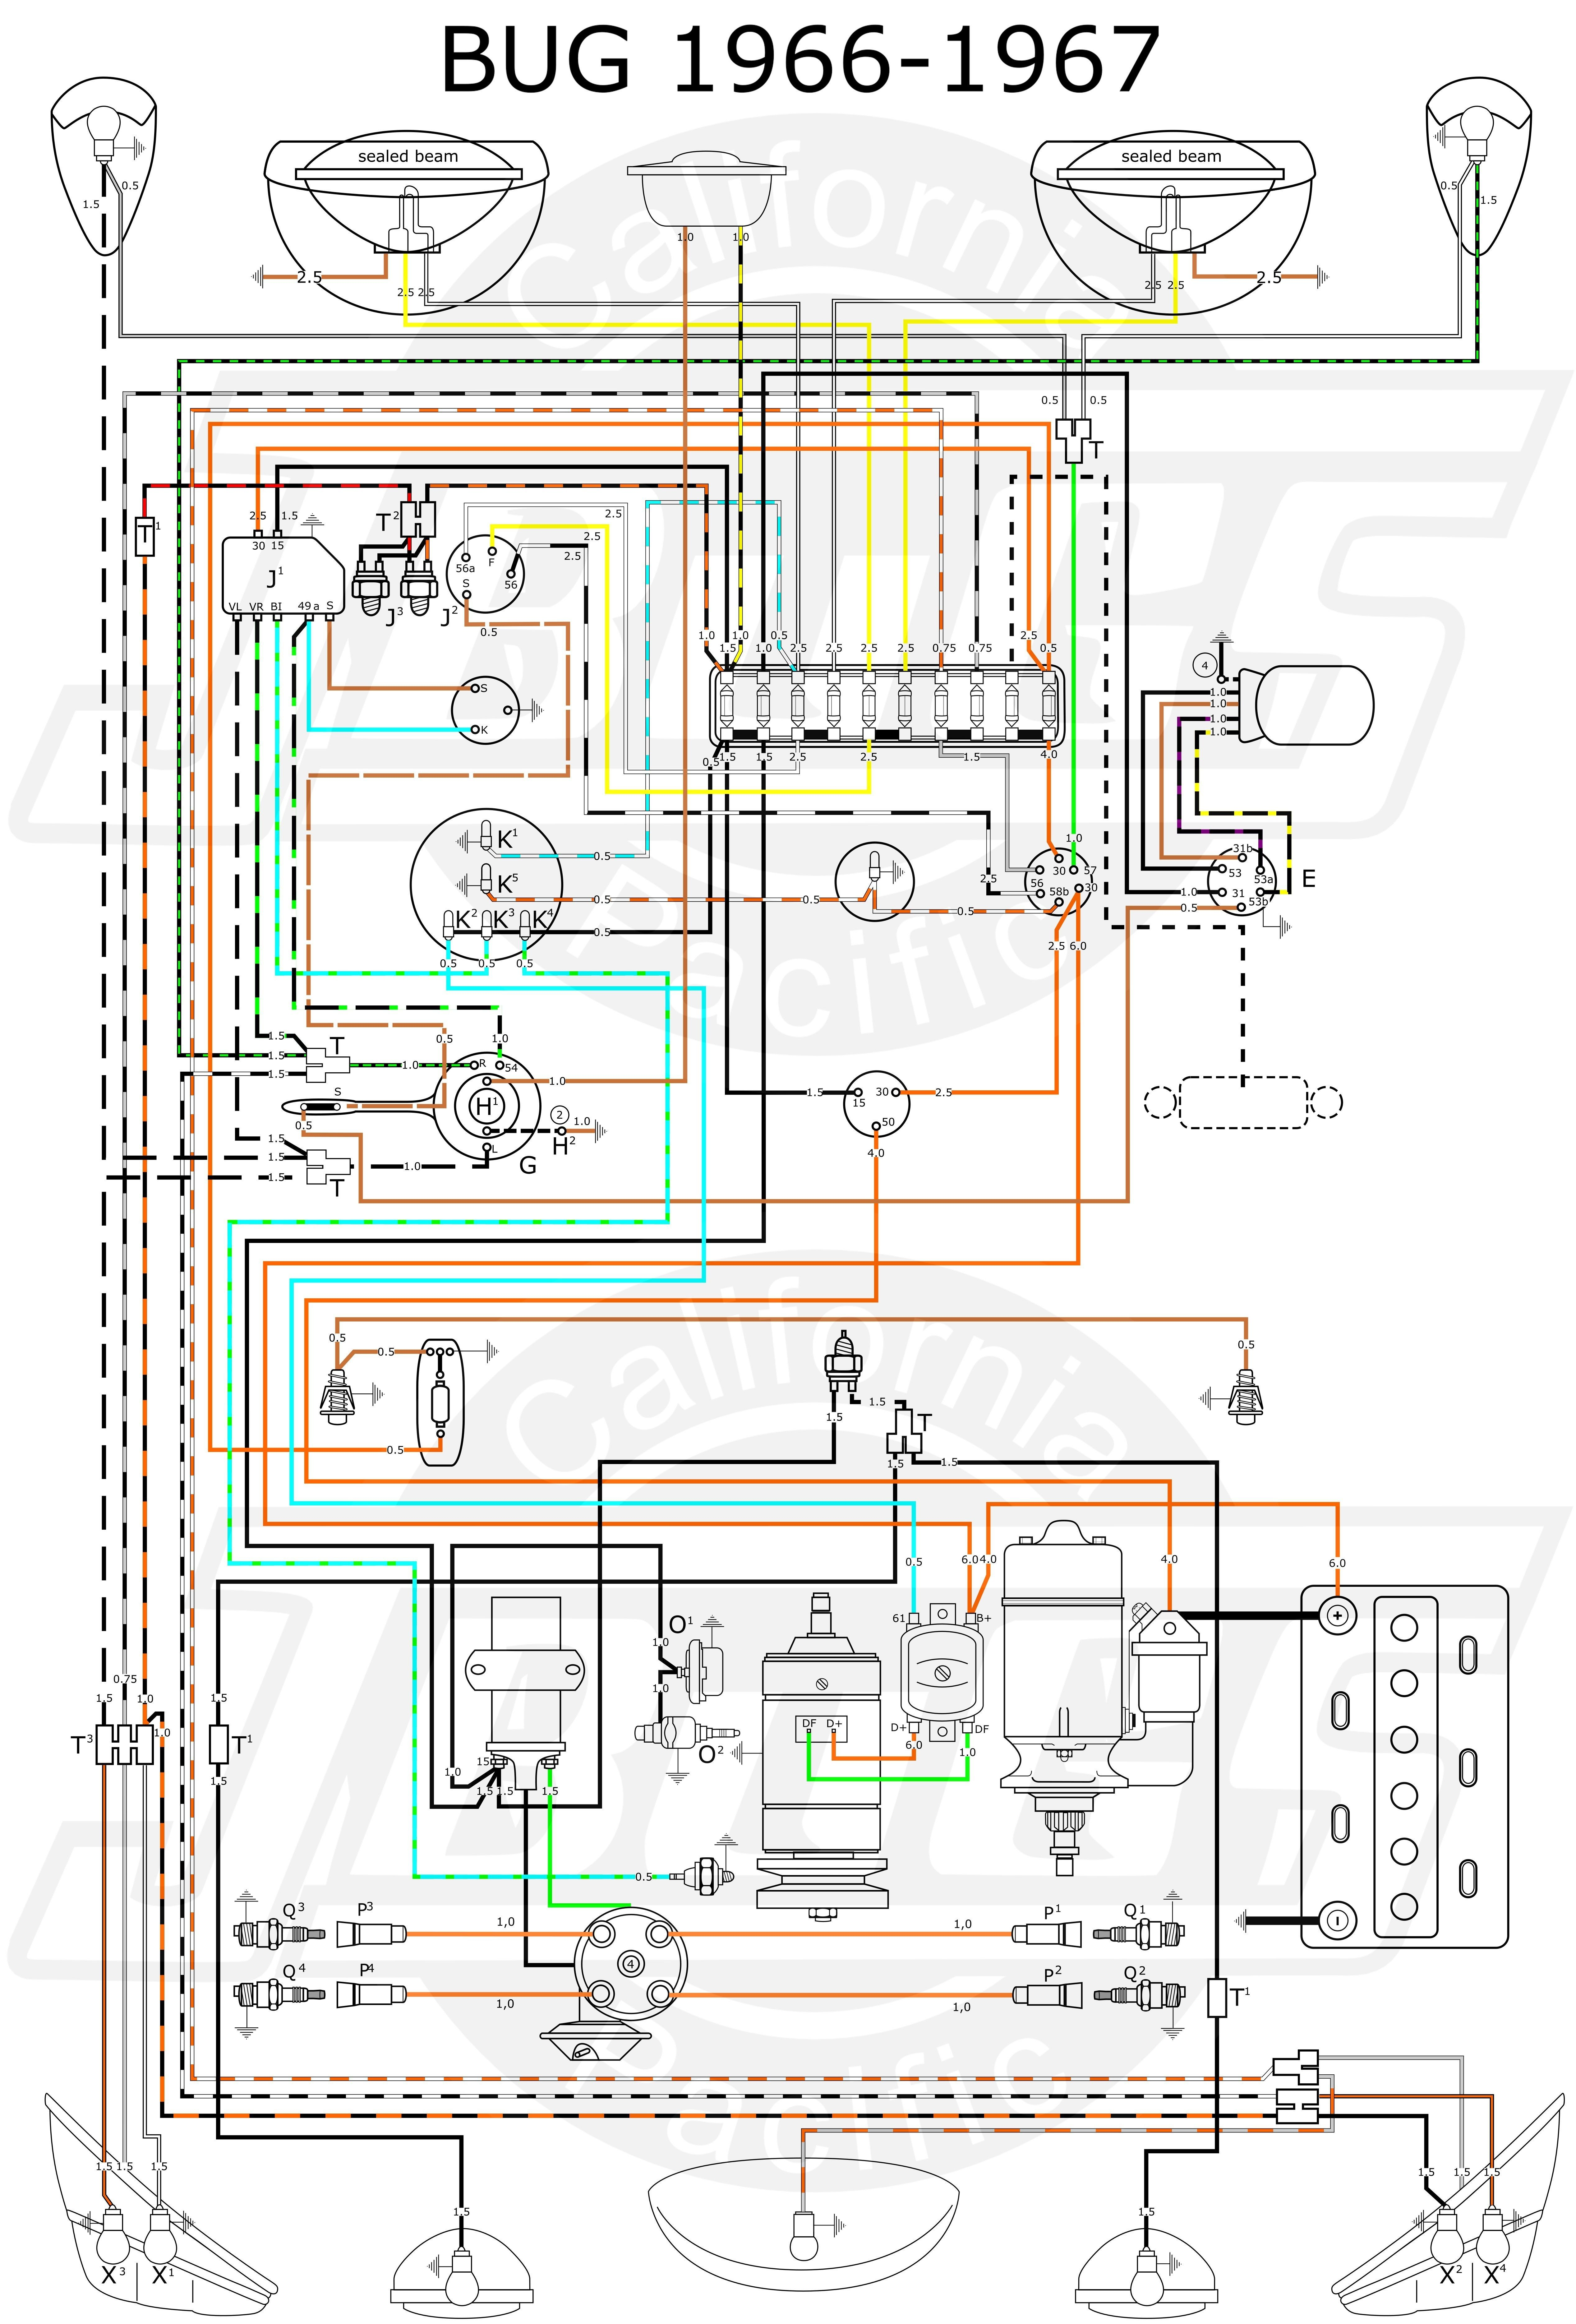 Bluebird Bus Wiring Diagram in 2020 | Diagram, Vw bus ...